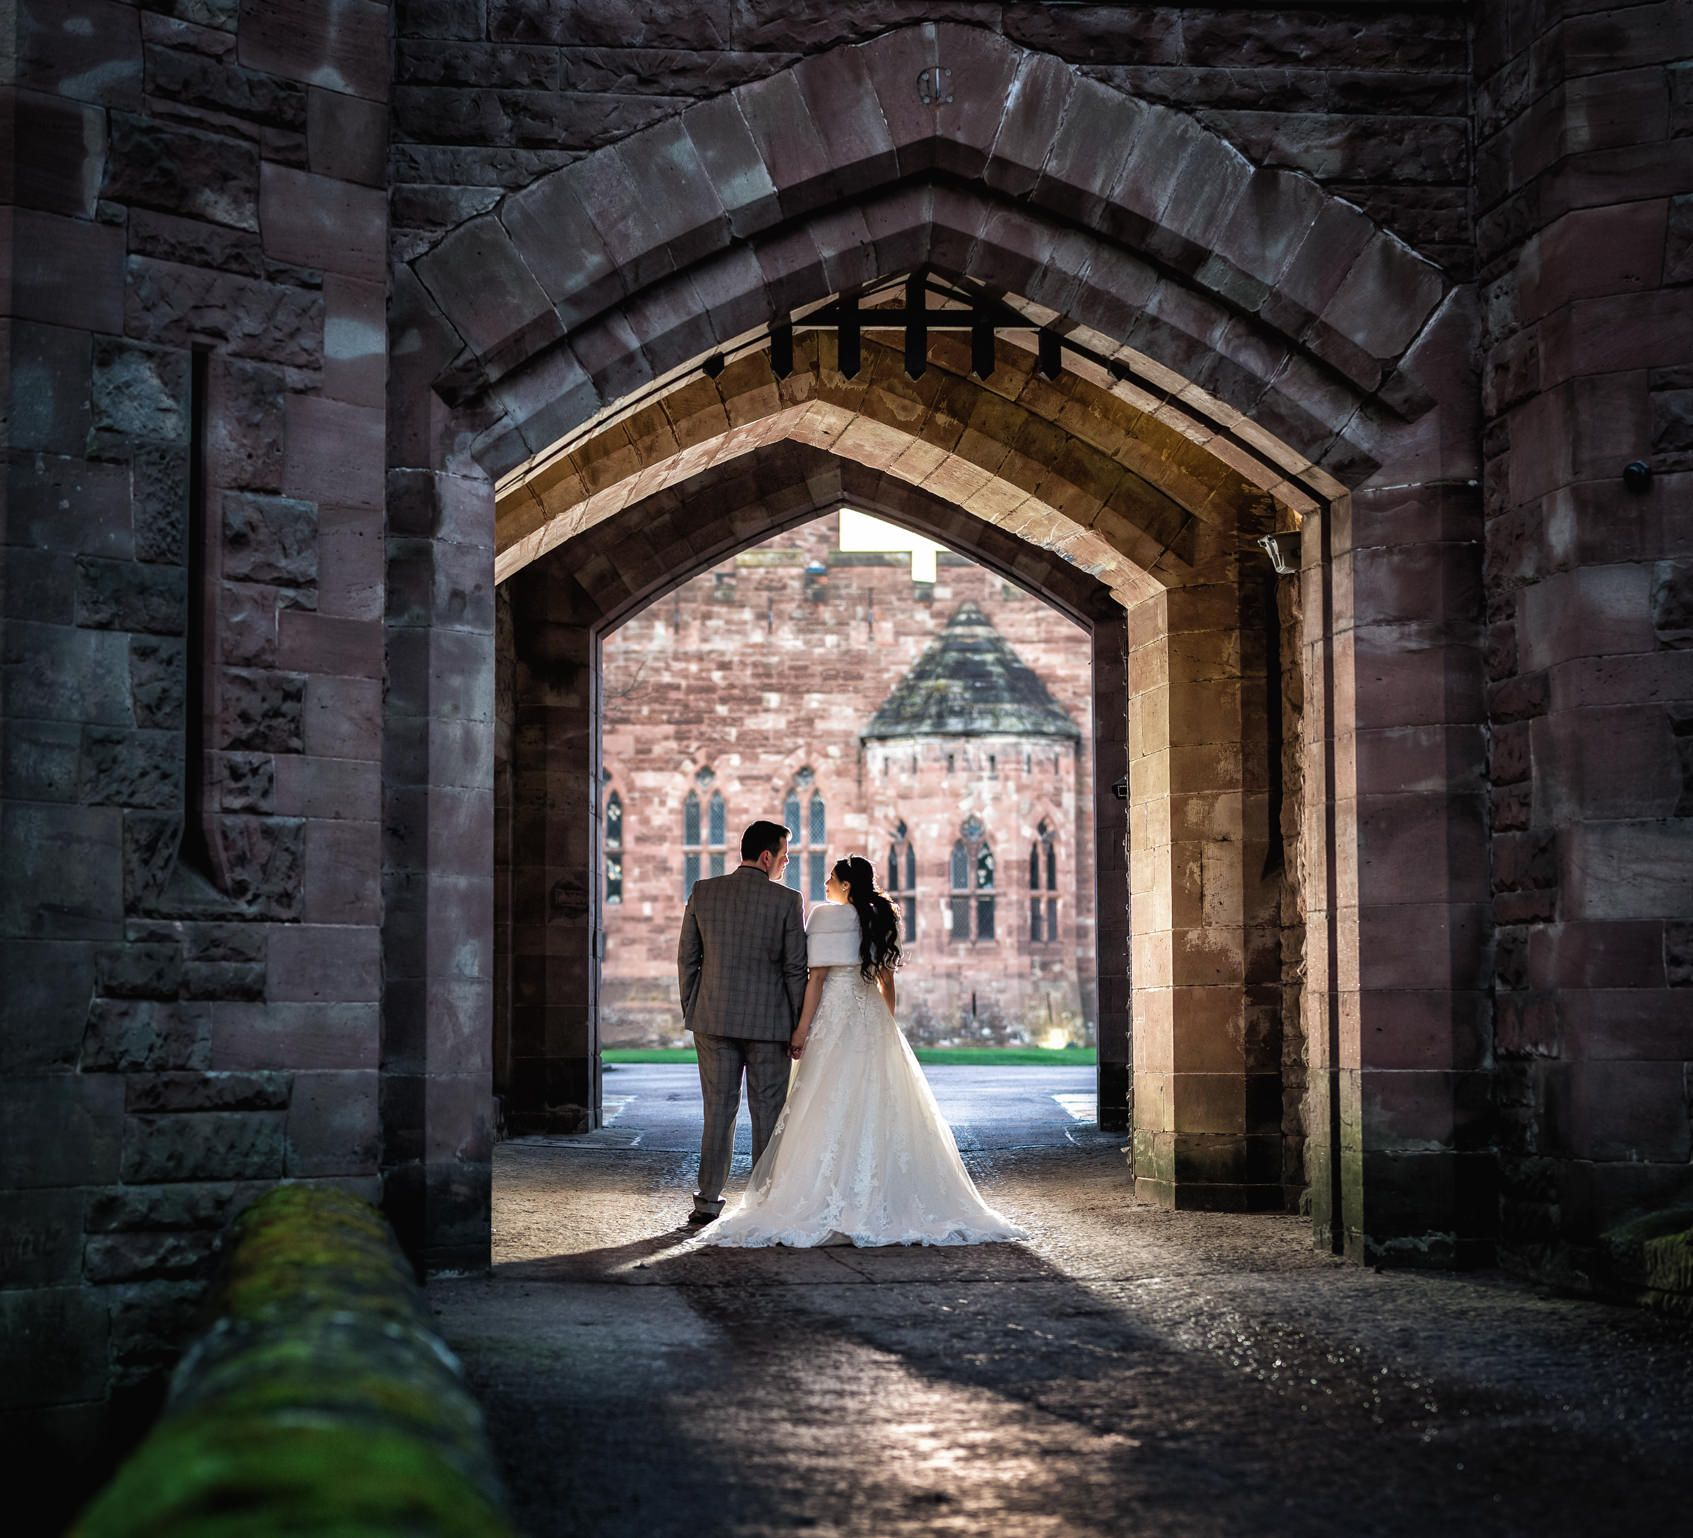 Bride and groom walk back to Peckforton Castle through the portcullis gate